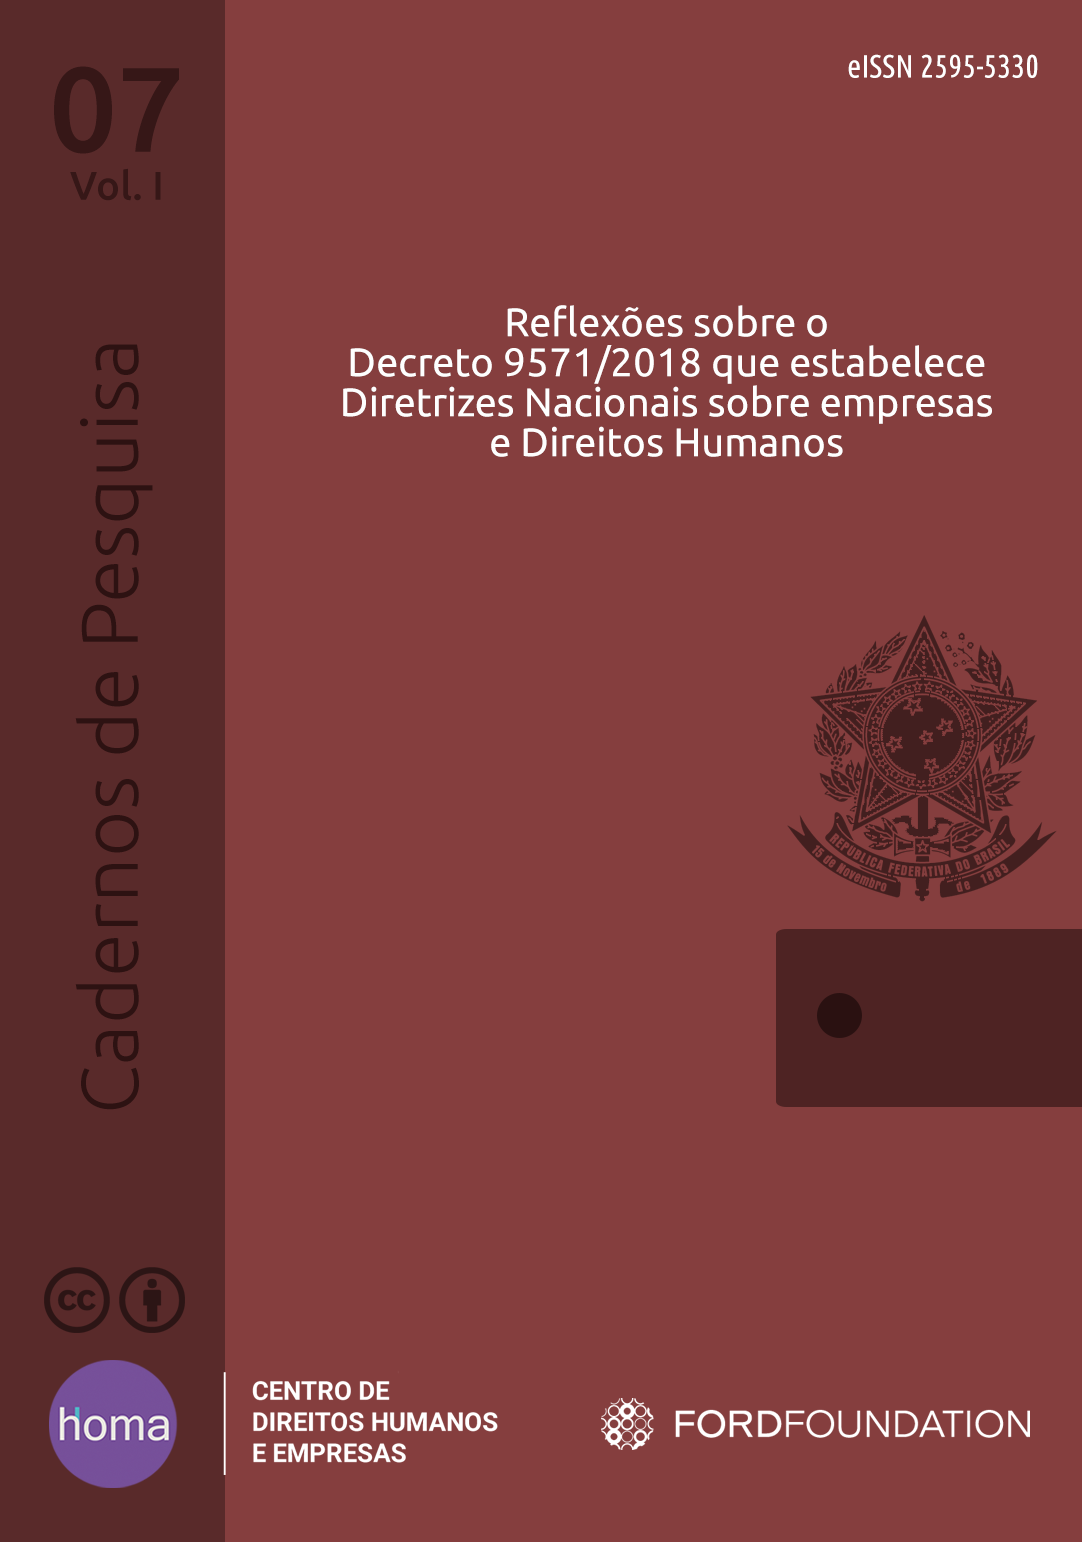 Reflections on Decree 9571/2018 establishing National Guidelines on Business and Human Rights (Only in Portuguese)